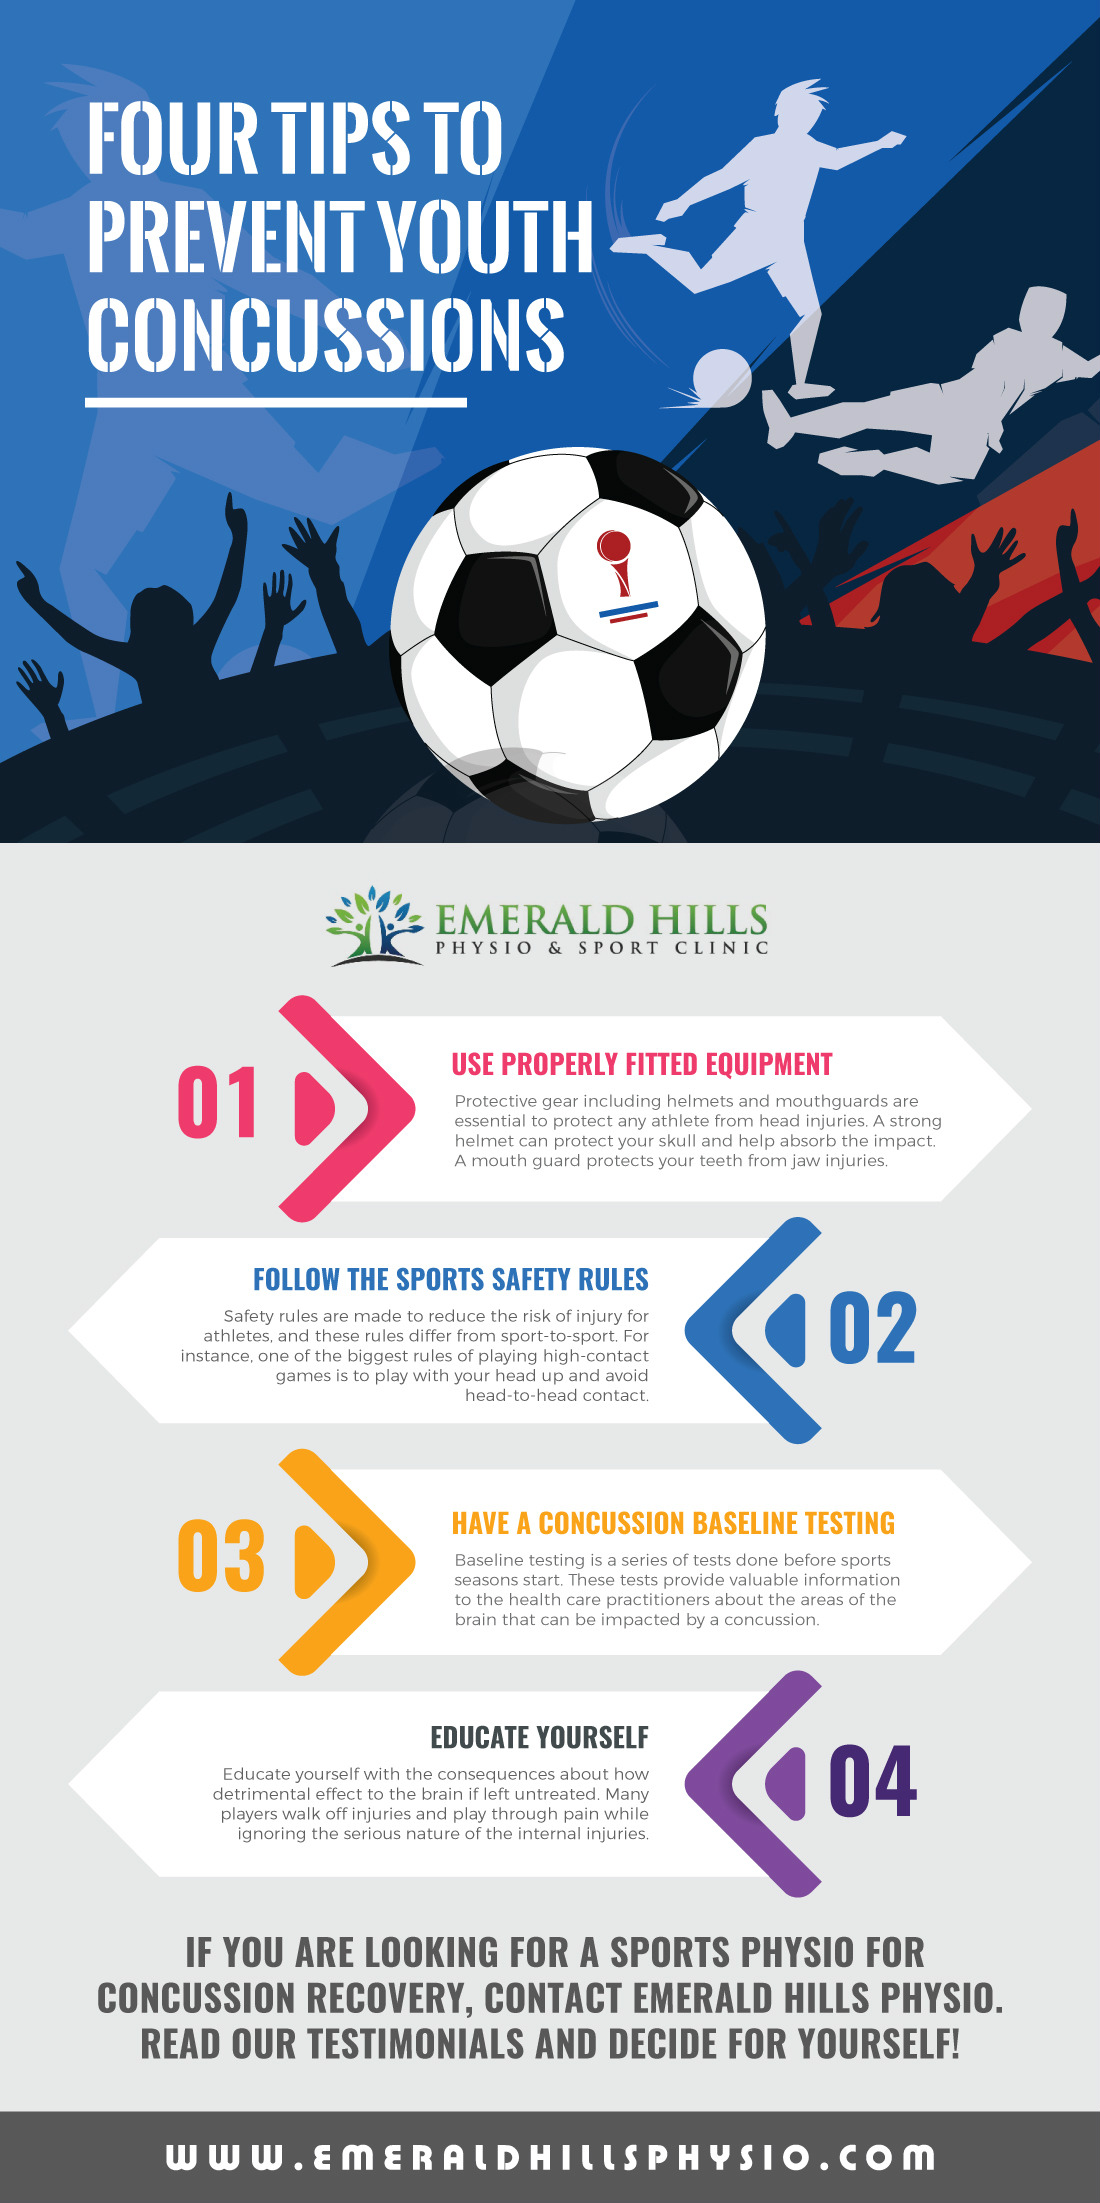 Tips to Prevent Youth Concussions